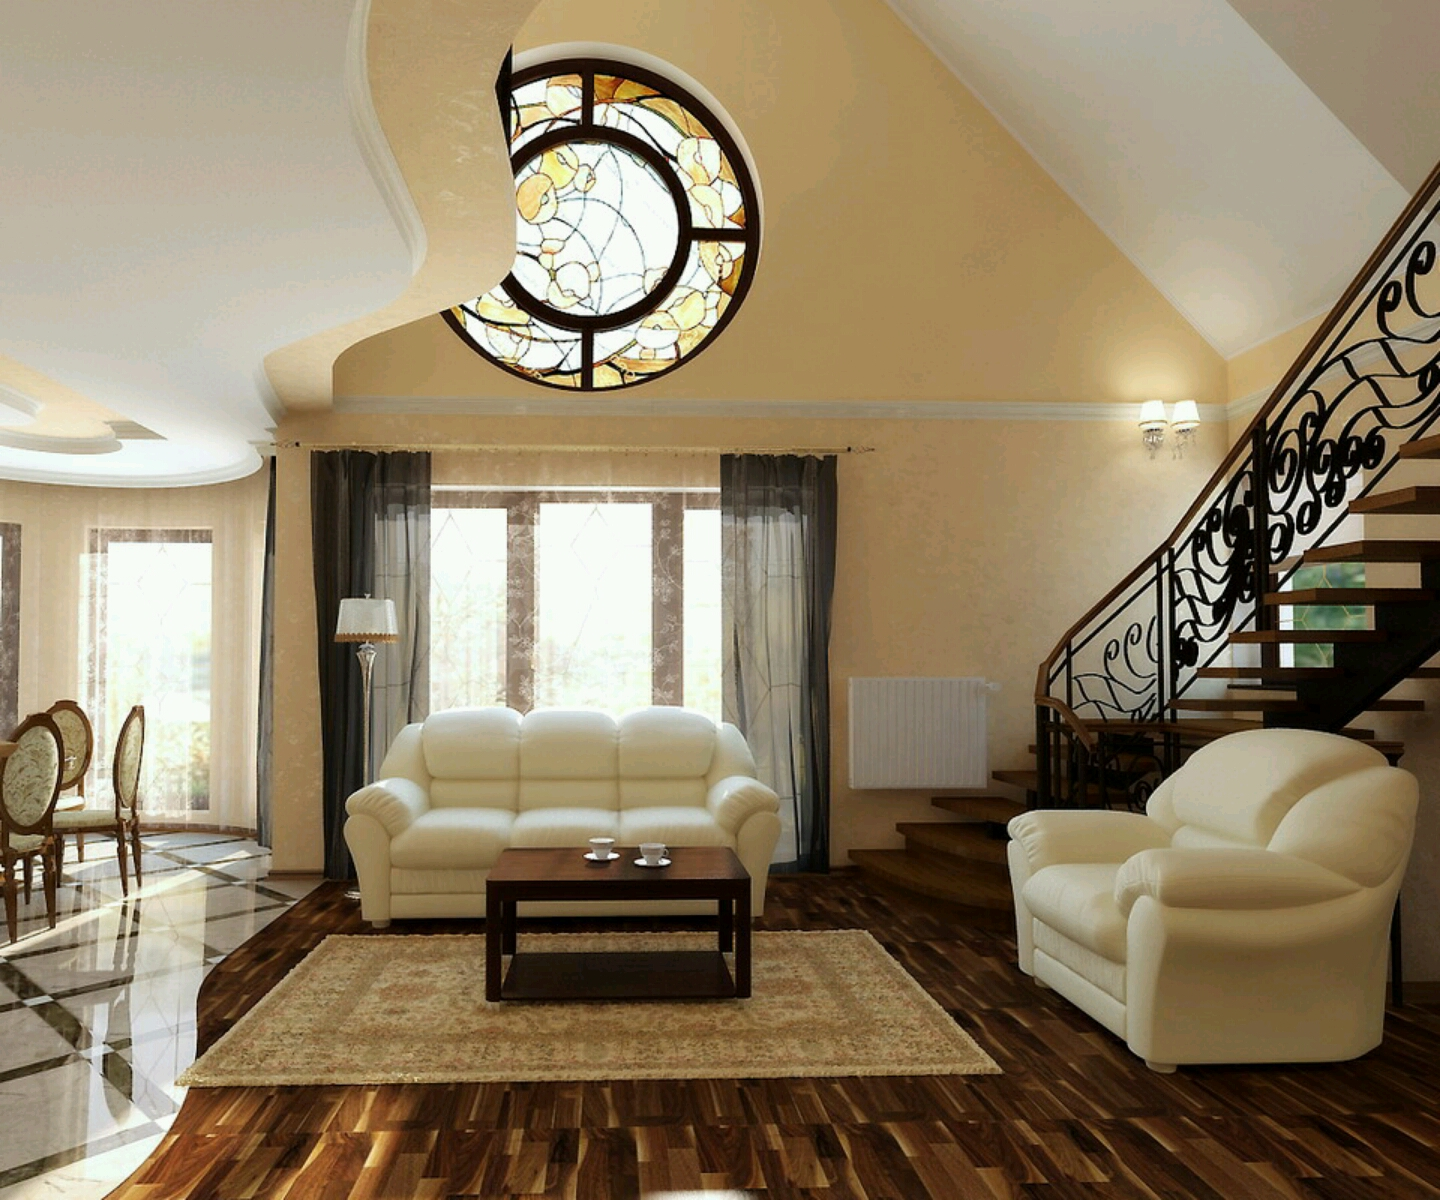 New Home Designs Latest Homes Interior Designs Studyrooms: New Home Designs Latest.: Modern Living Rooms Interior